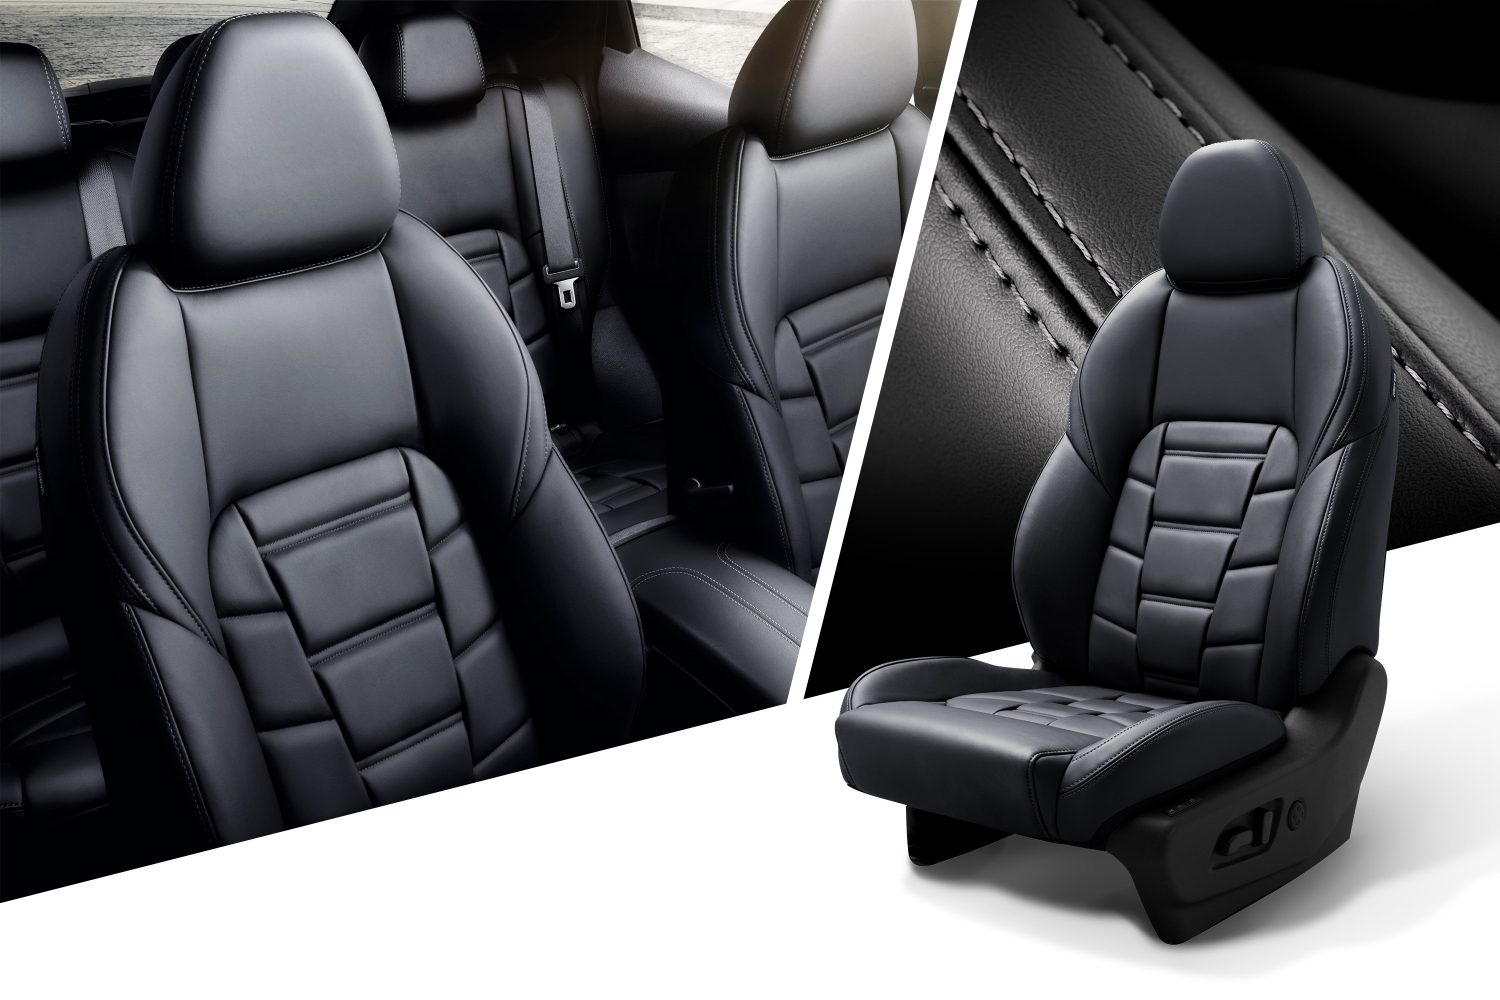 Qashqai collage with seats, trim and seat packshot